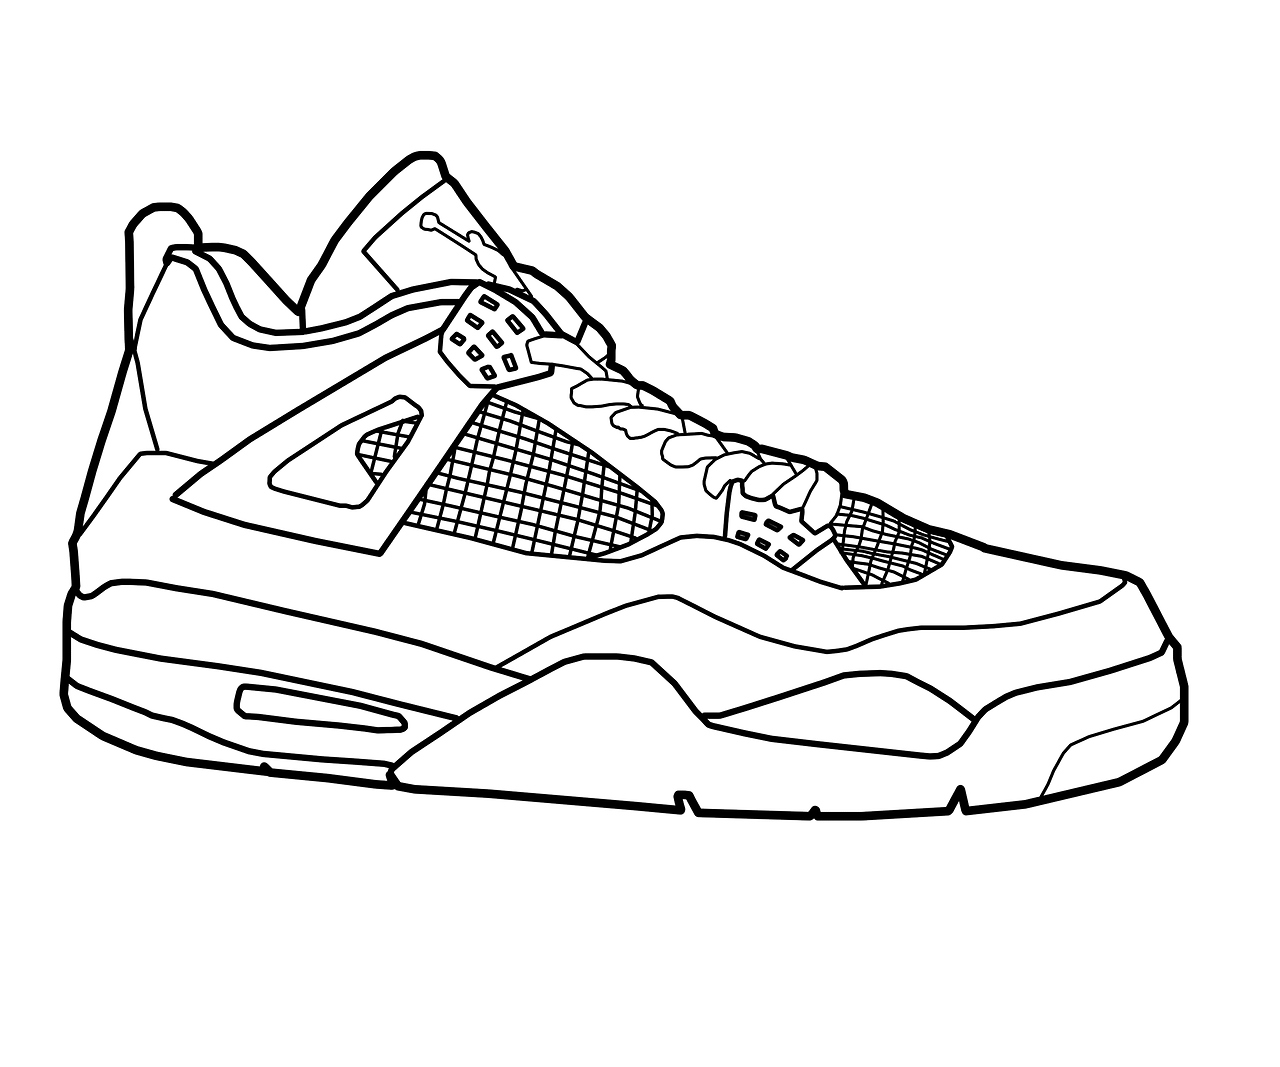 running shoes coloring pages running shoe coloring page at getcoloringscom free coloring shoes running pages